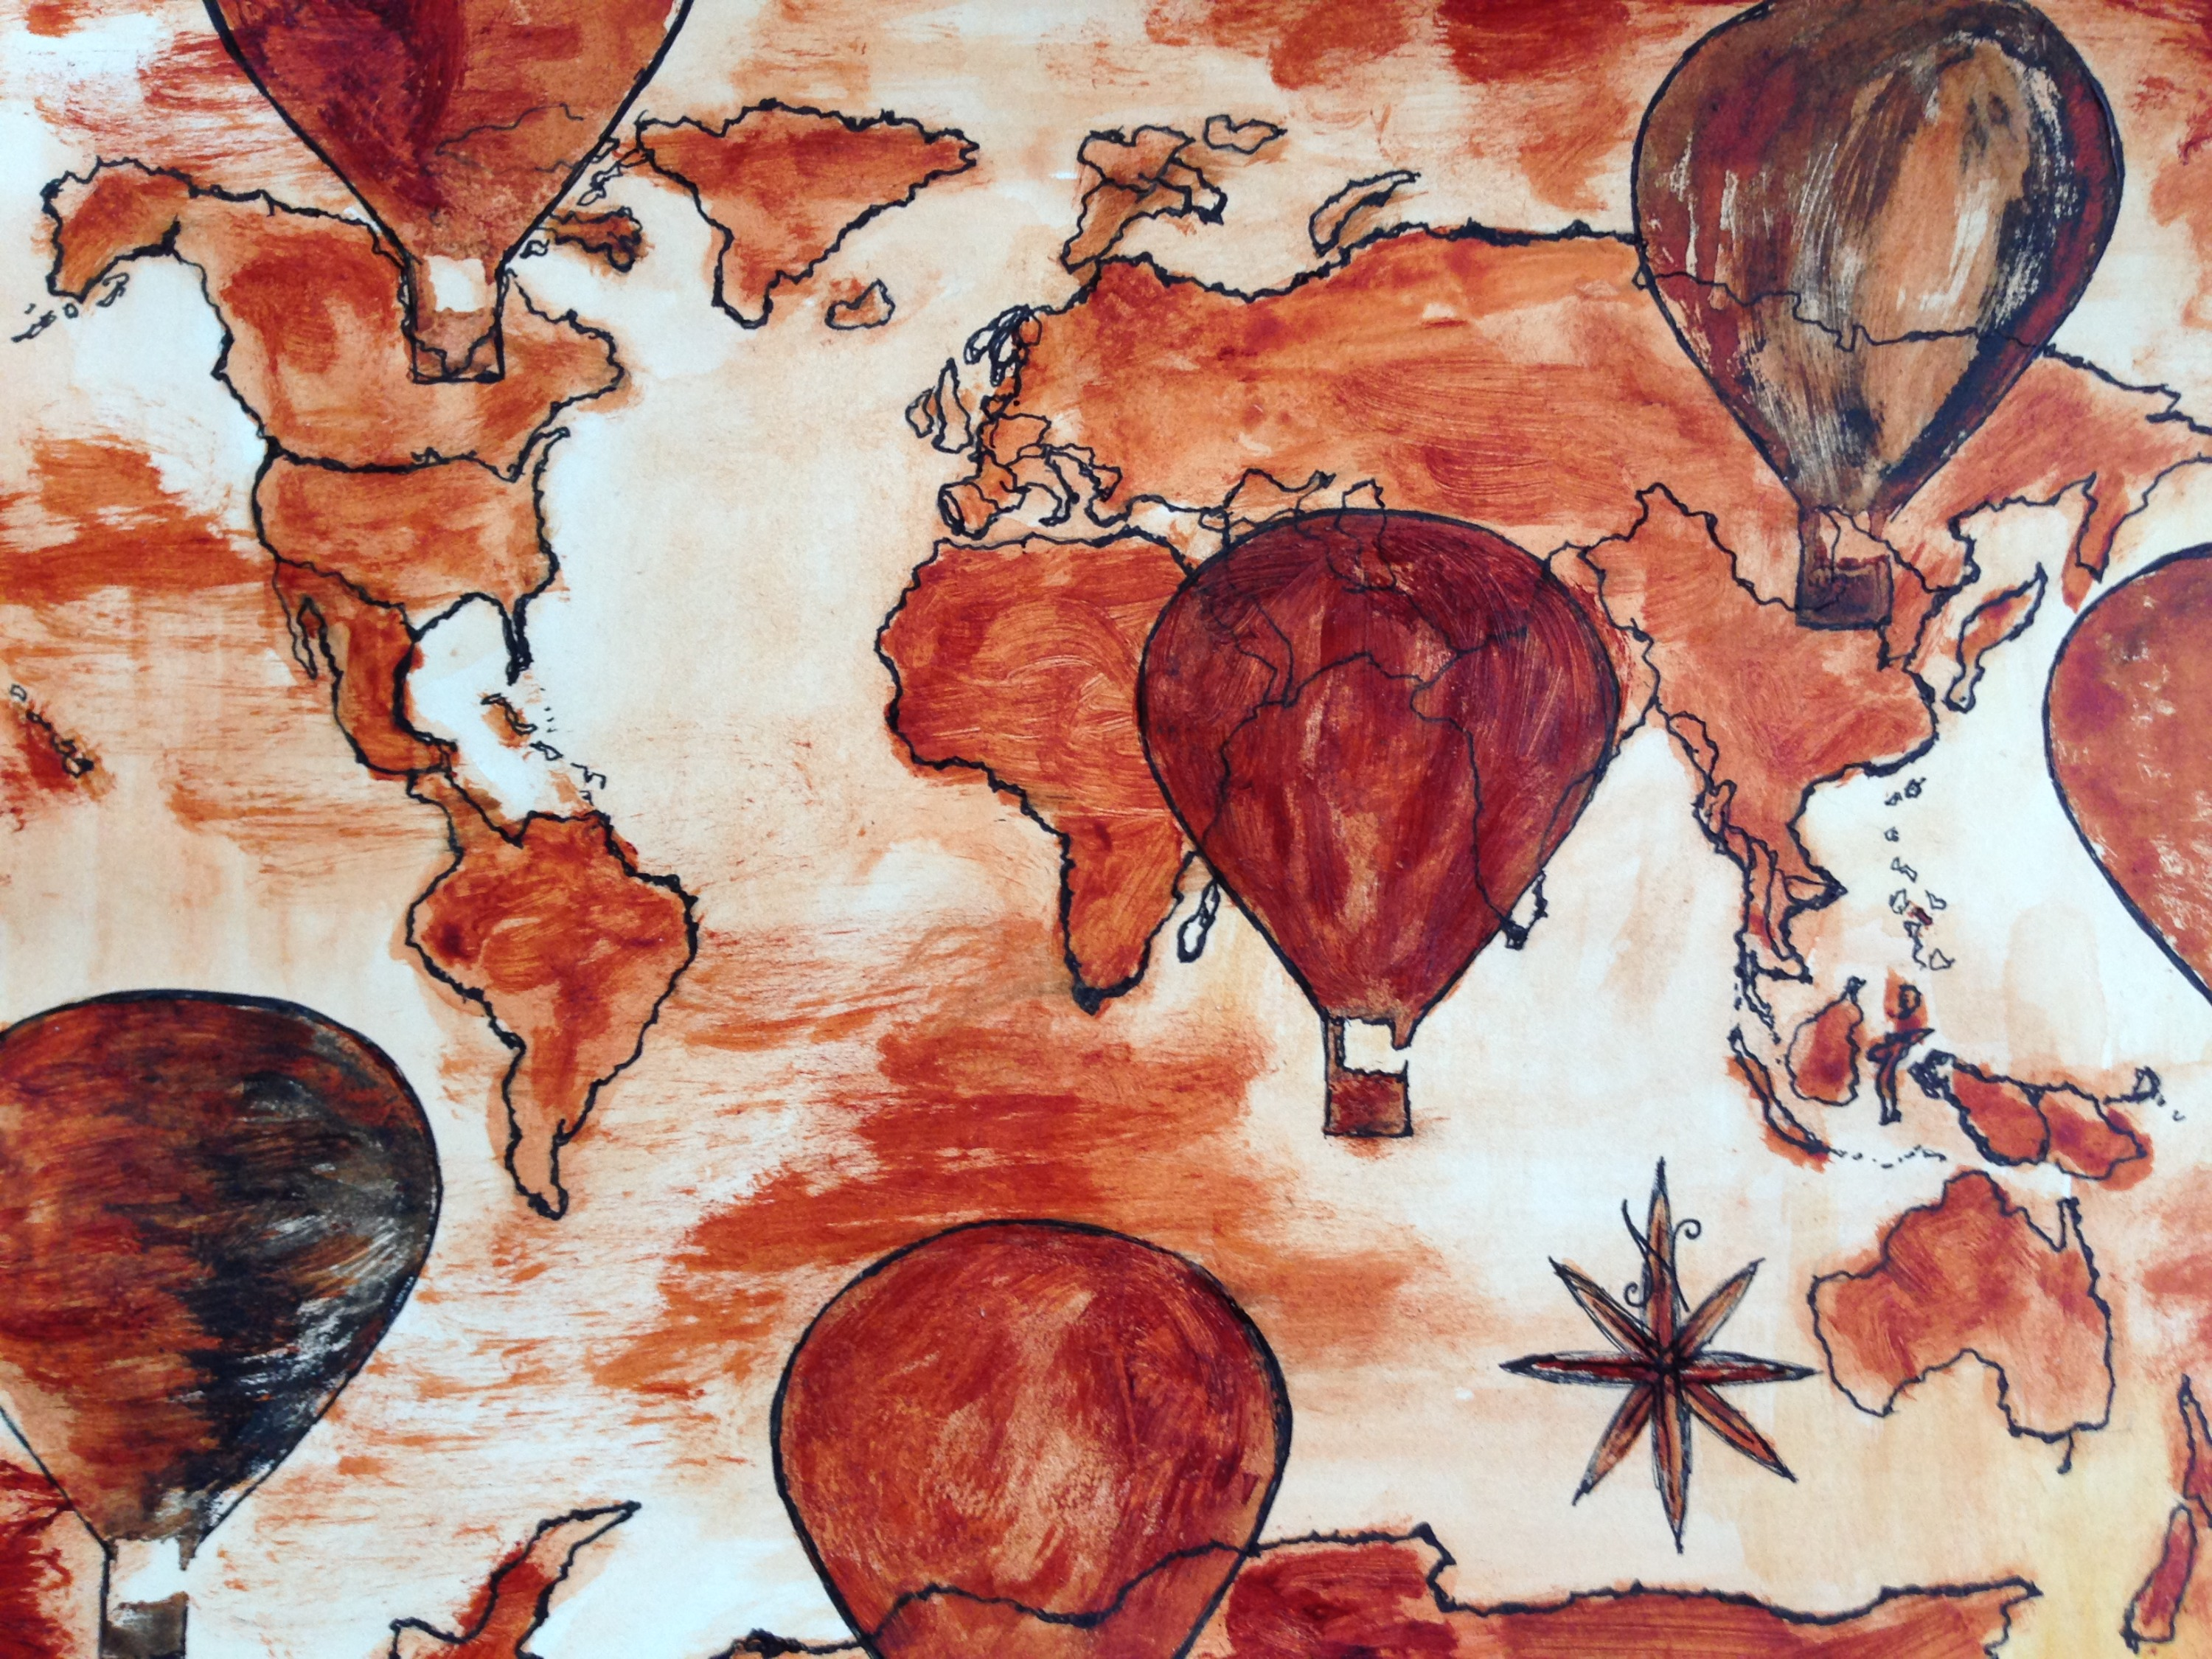 Hot Air Balloons Over the World